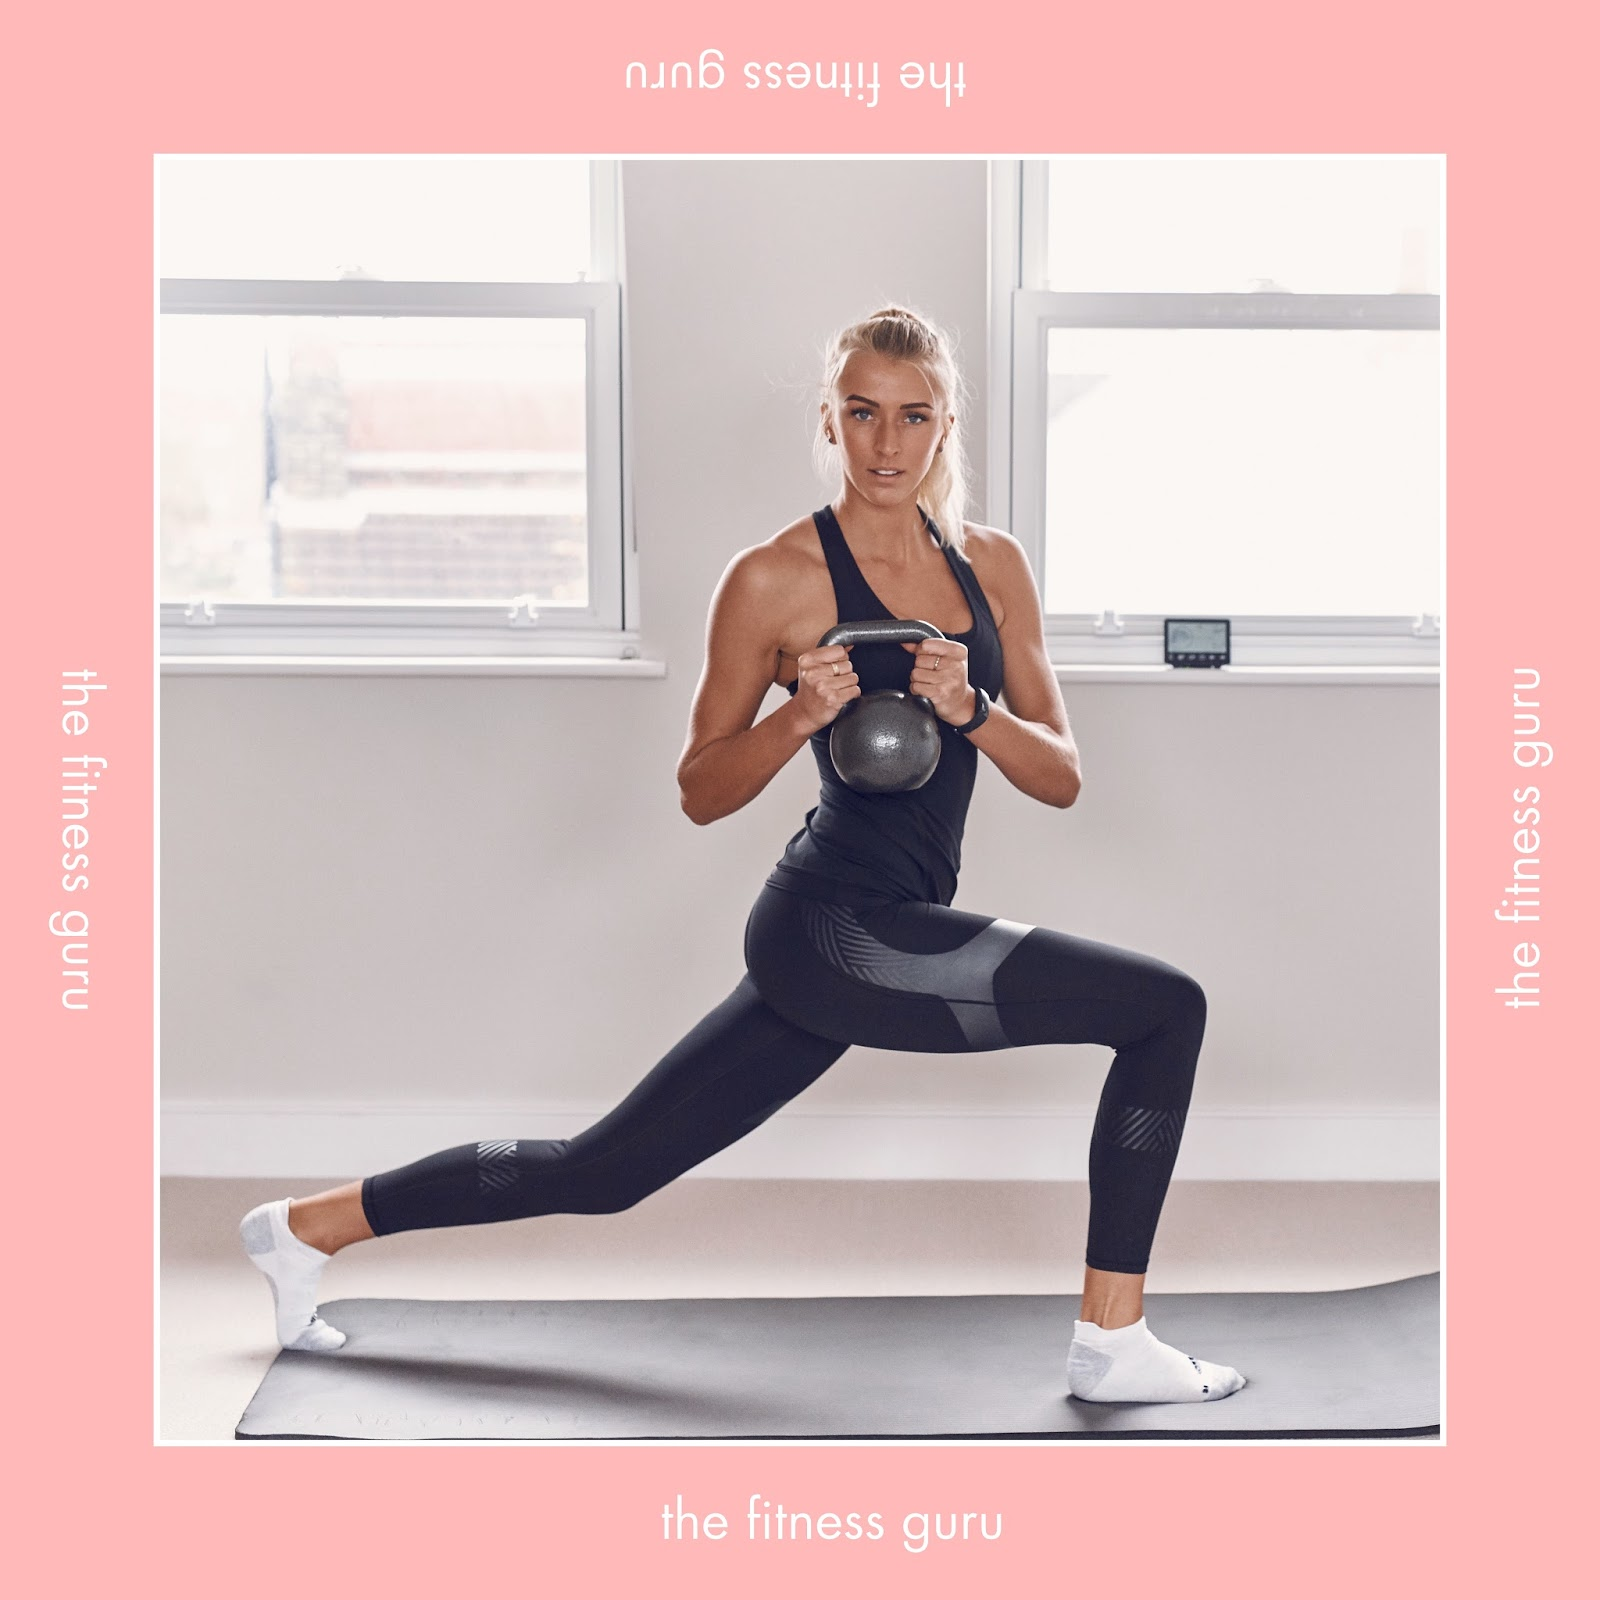 Meet Zanna Van Dijk - The Fitness Guru.  She shares her top tips for staying strong and healthy this winter